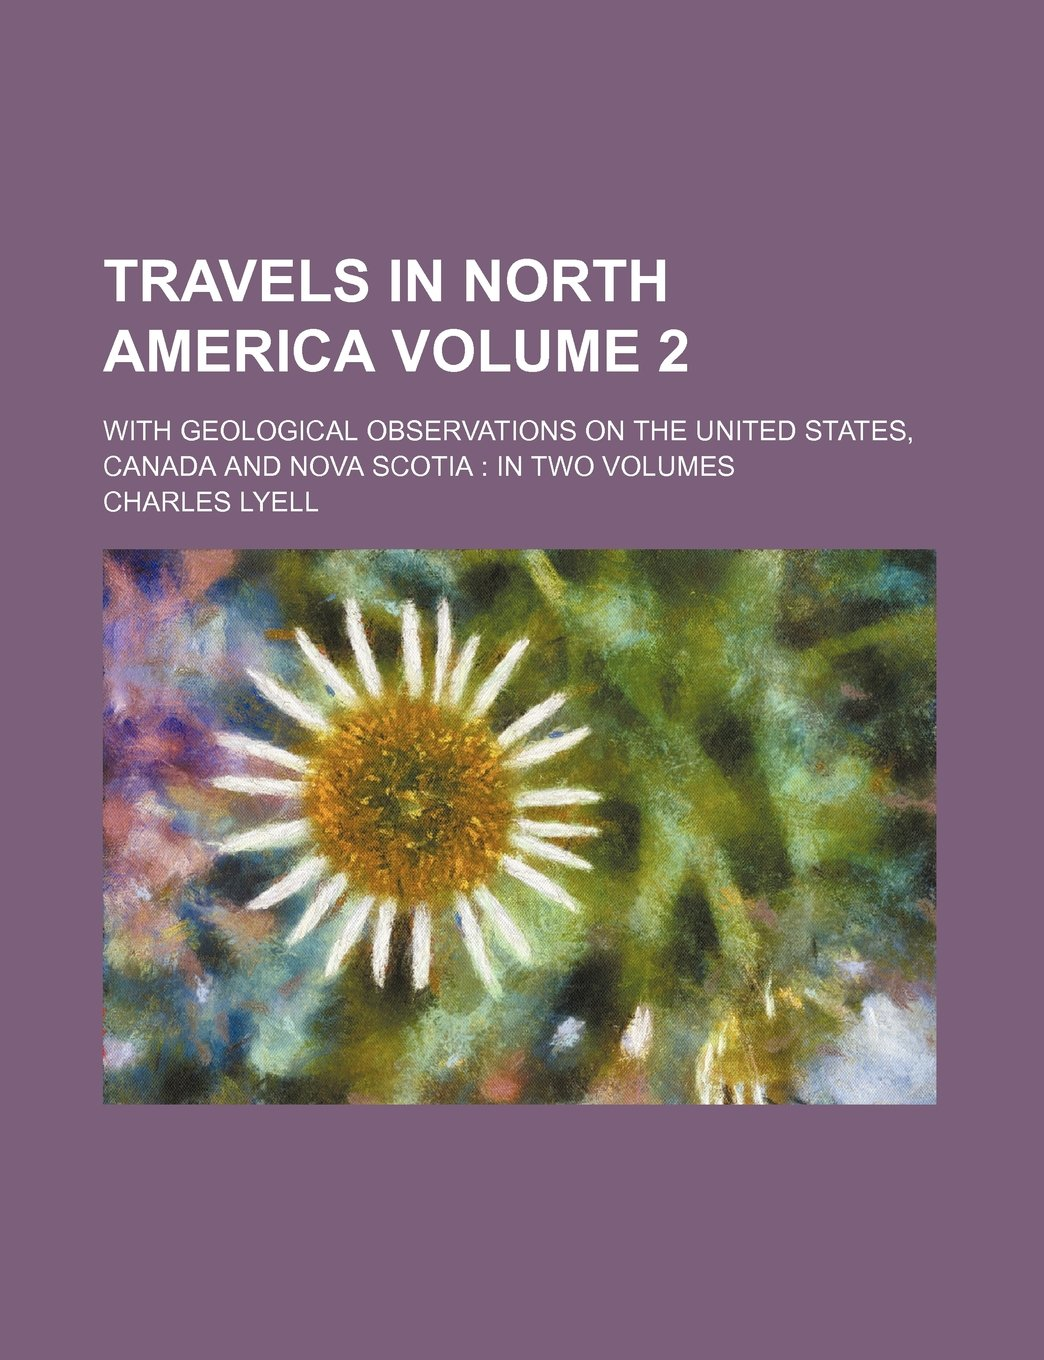 Travels in North America Volume 2; with geological observations on the United States, Canada and Nova Scotia: in two volumes